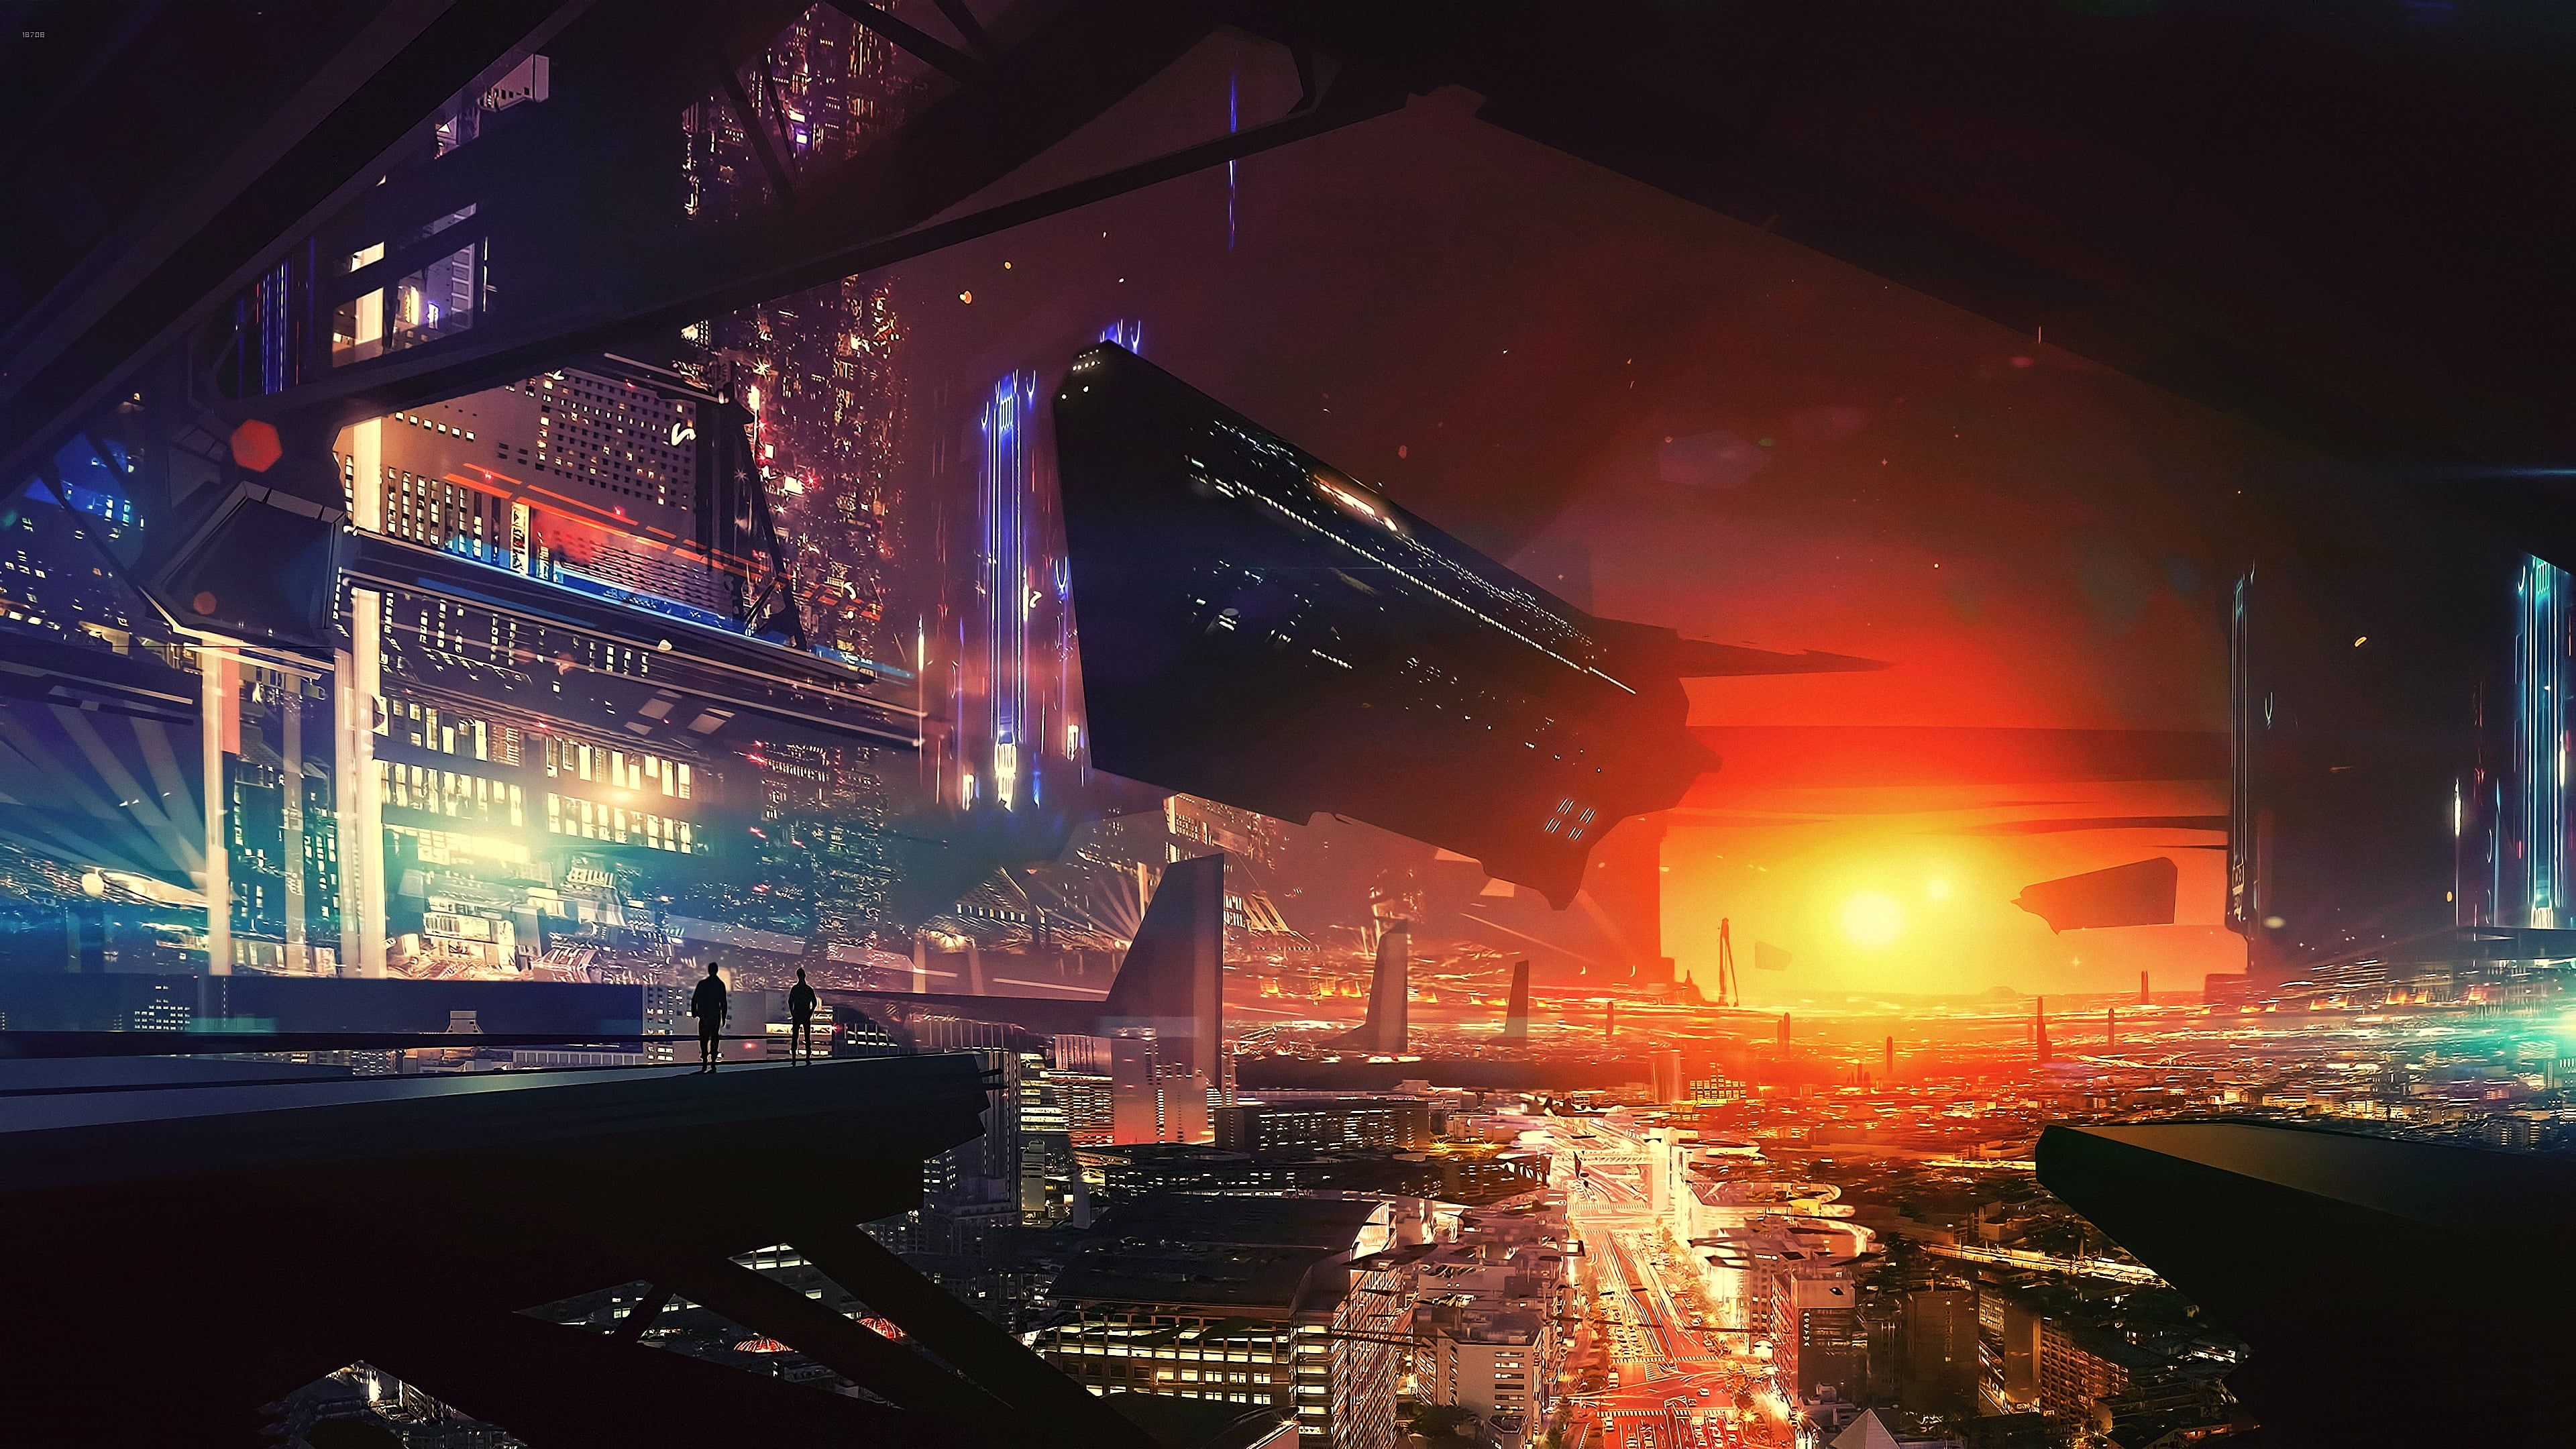 Black And Red Car Artwork Futuristic City Science Fiction Digital Art Concept Art Cityscape Futuristic Su In 2020 Futuristic City World Wallpaper Digital Wallpaper